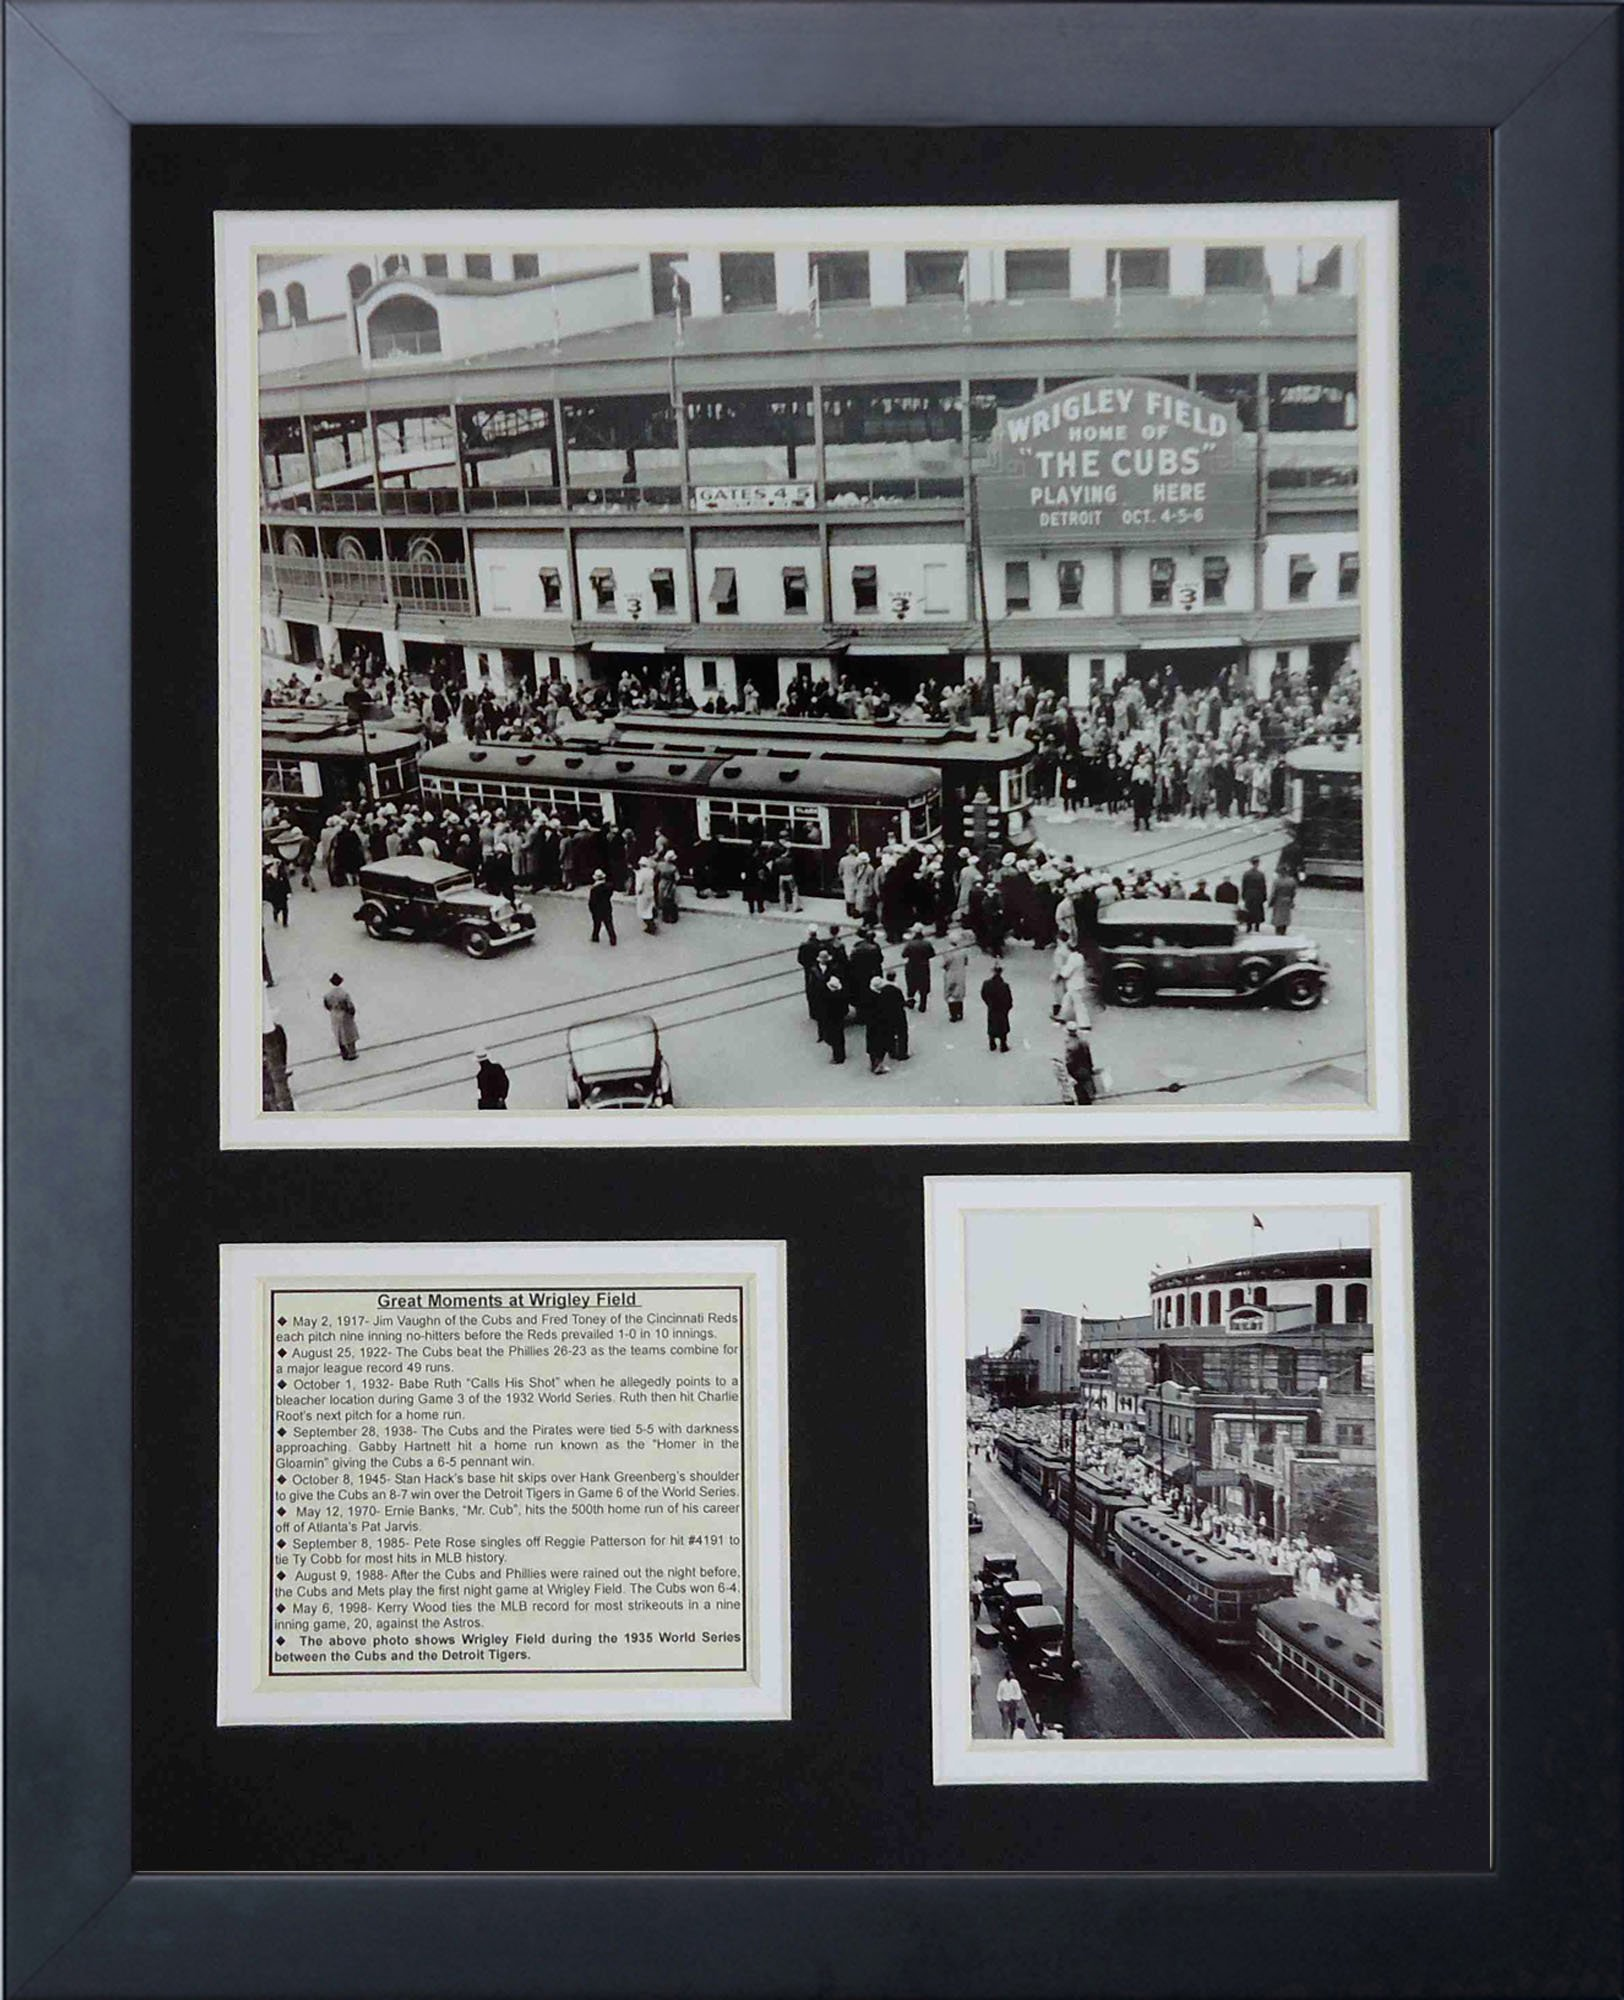 Legends Never Die Wrigley Field 1935 Framed Photo Collage, 11x14-Inch